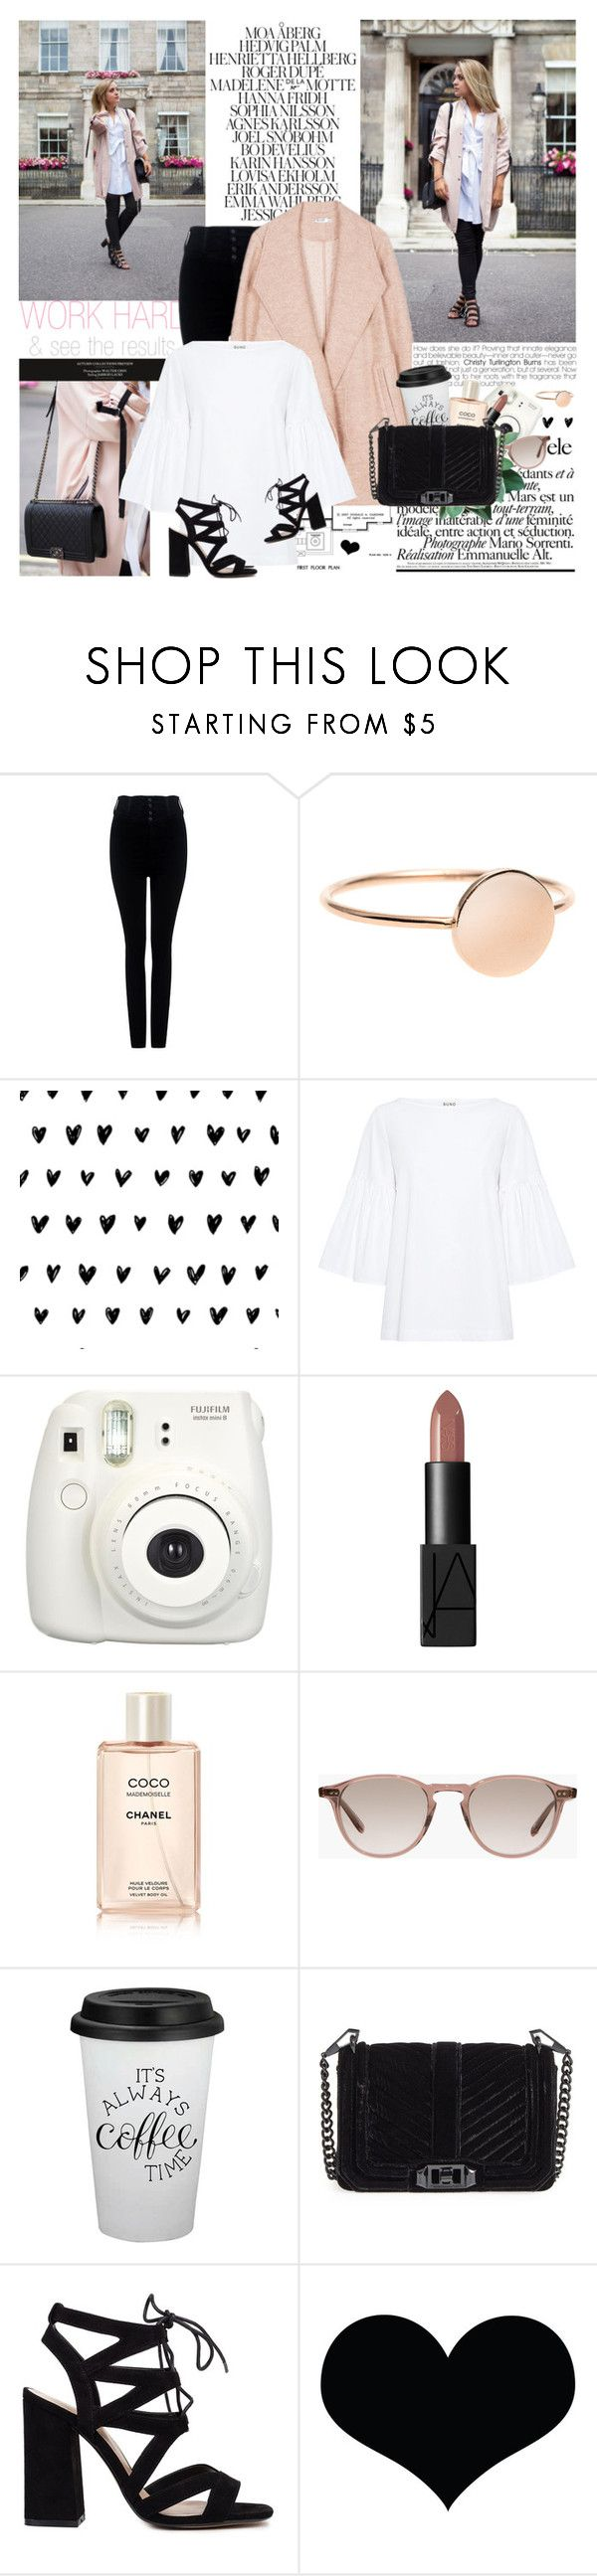 """""""Fleur De Force"""" by mars ❤ liked on Polyvore featuring Citizens of Humanity, SUNO New York, Fujifilm, NARS Cosmetics, Chanel, Hampton Sun, Rebecca Minkoff and Brika"""